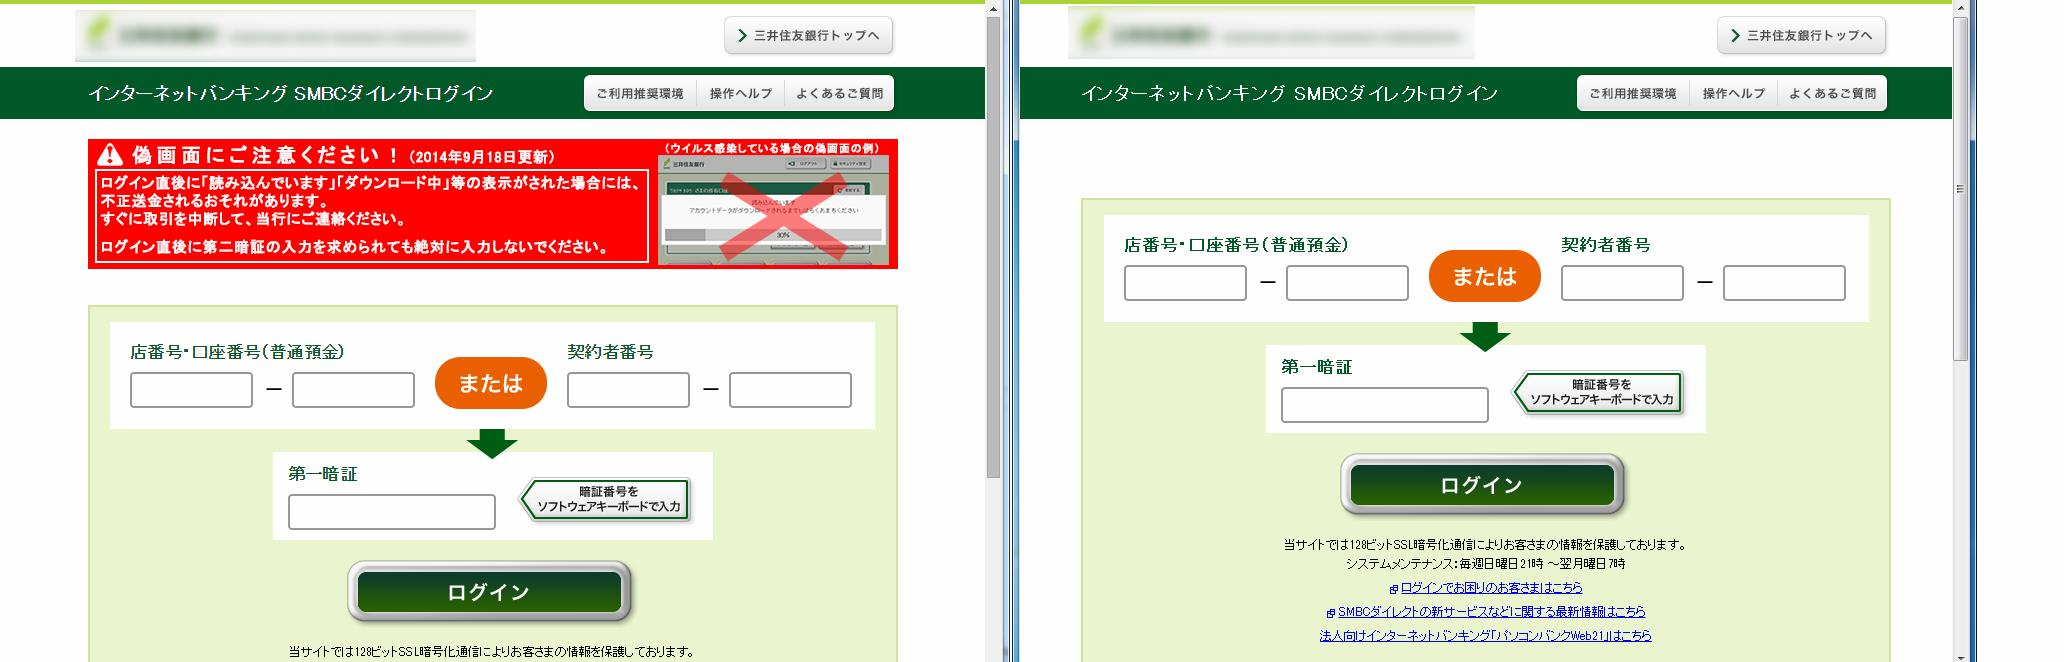 Online banking page screenshots before and after the injection